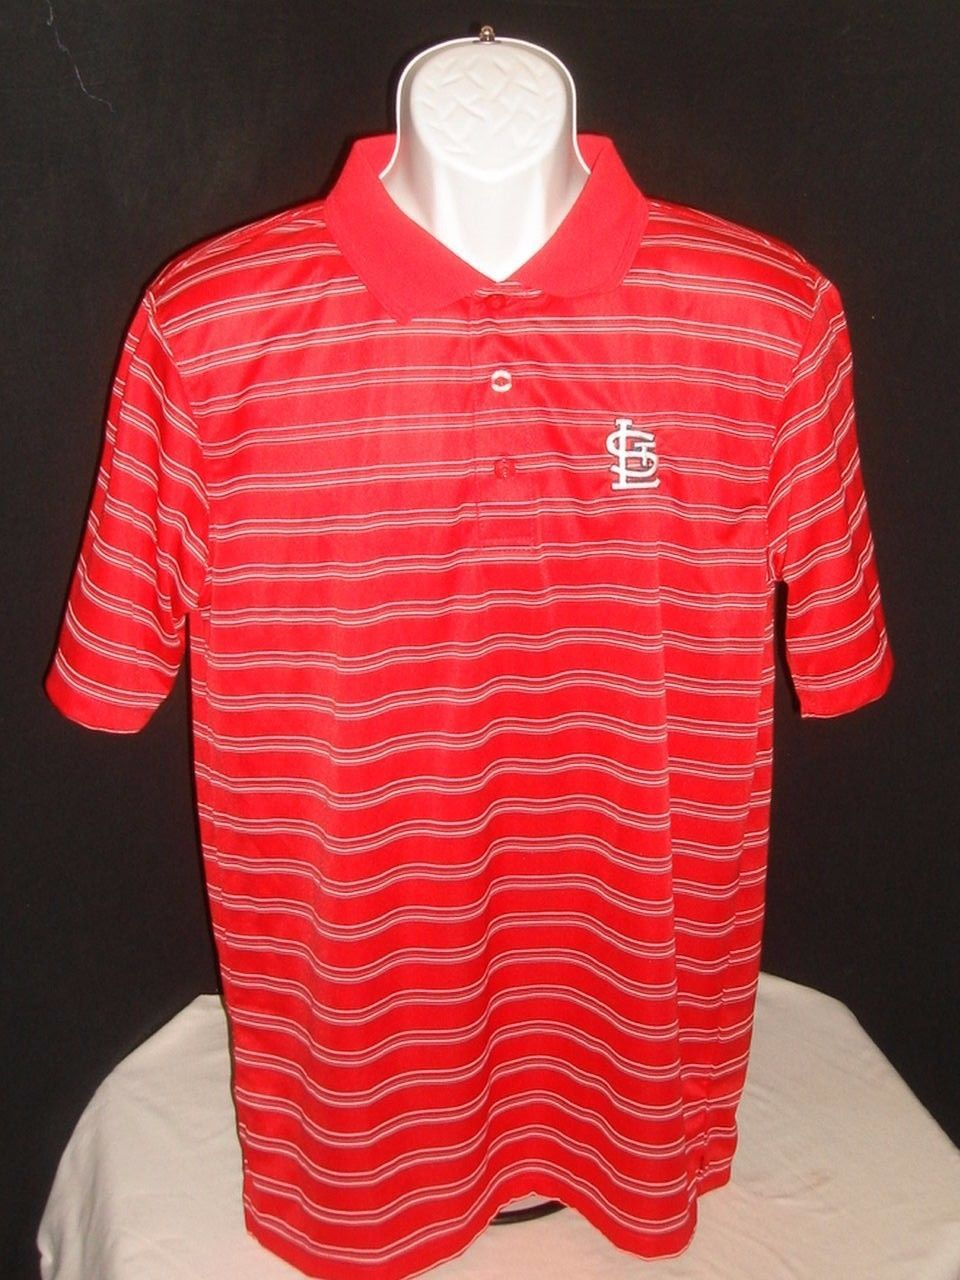 True Fan St Louis Cardinals Red Ss Polo Shirt By Genuine